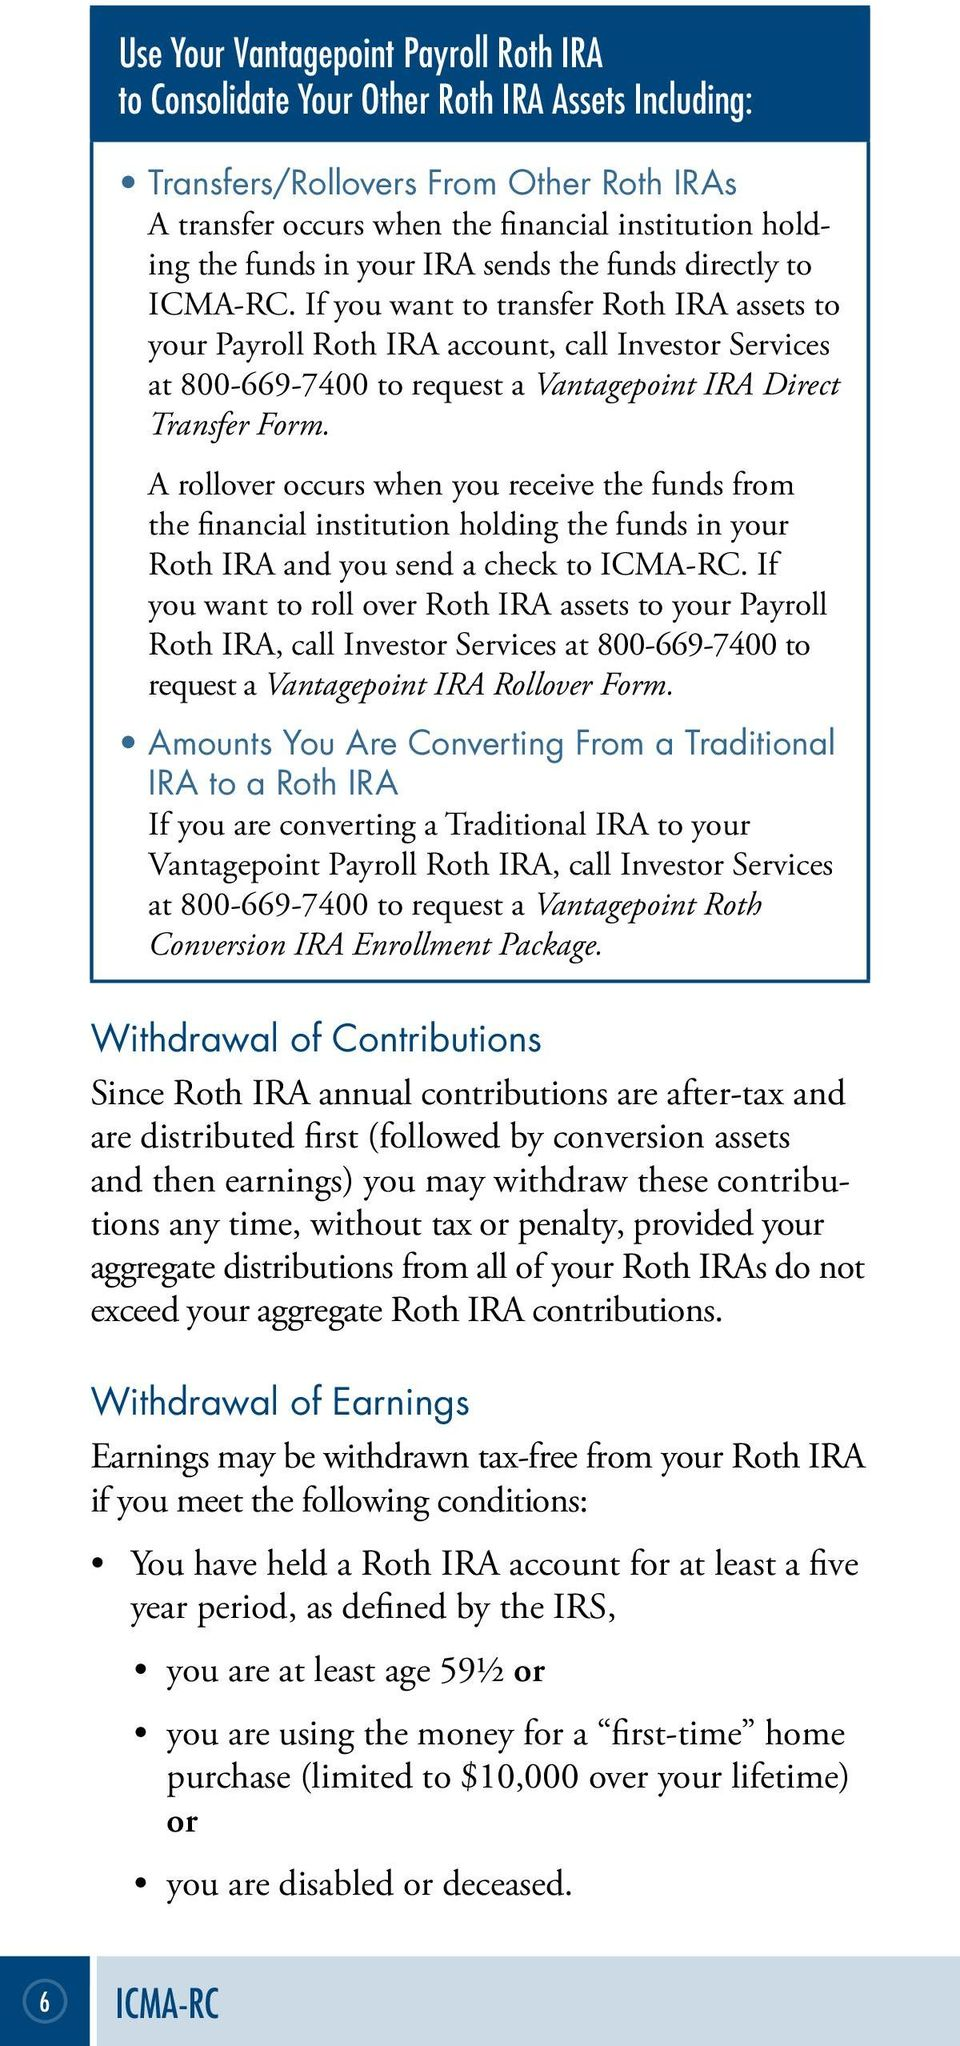 If you want to transfer Roth IRA assets to your Payroll Roth IRA account, call Investor Services at 800-669-7400 to request a Vantagepoint IRA Direct Transfer Form.